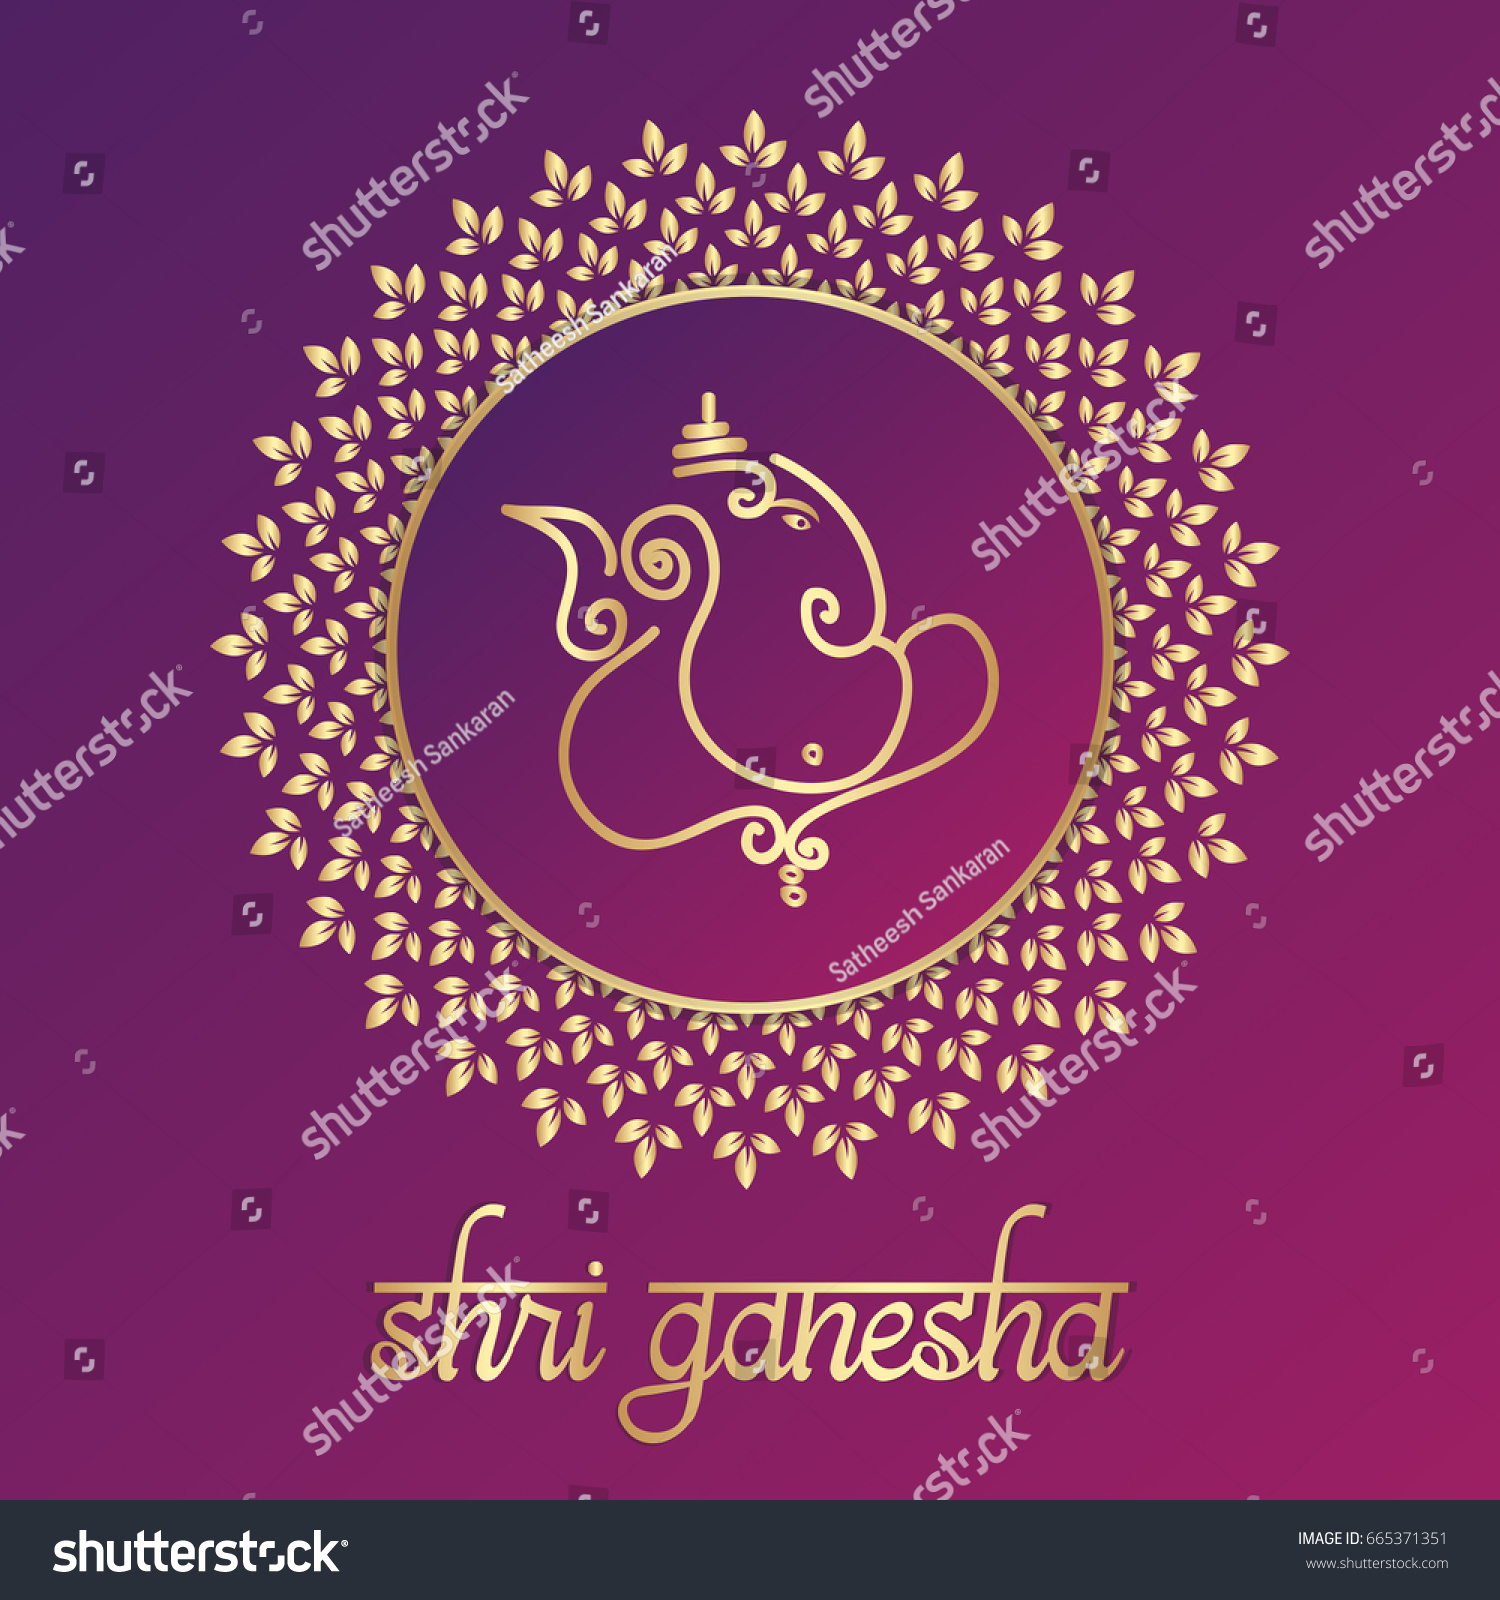 Indian God Ganesha Vector Illustration Design Stock Vector 665371351 - Shutterstock